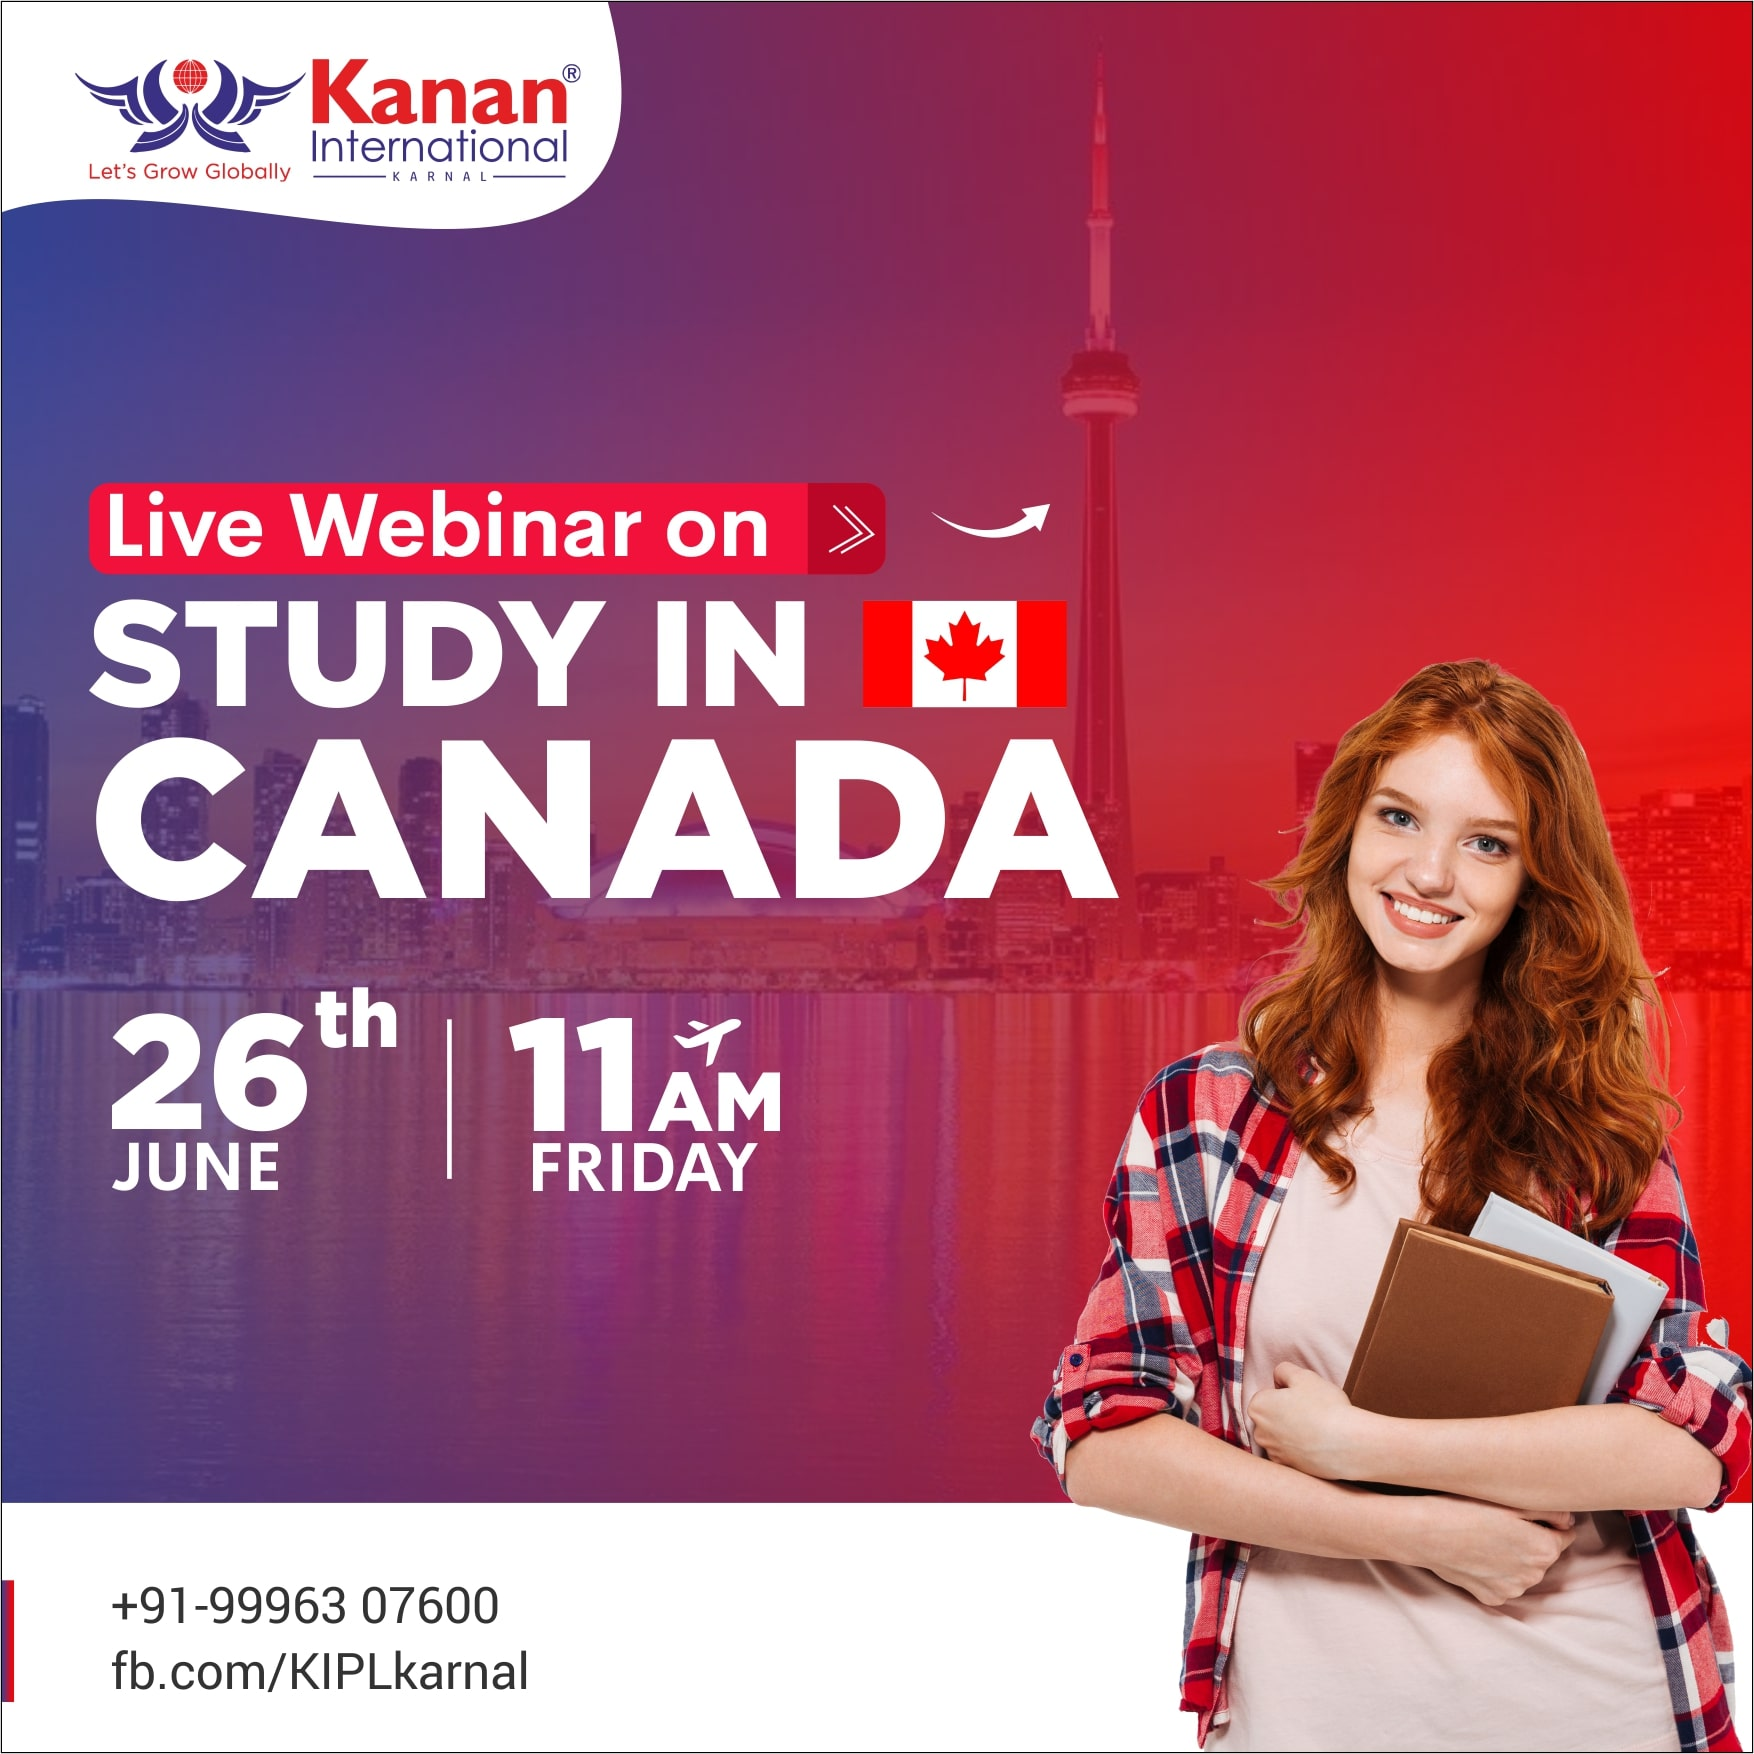 Benefits of Studying in Canada